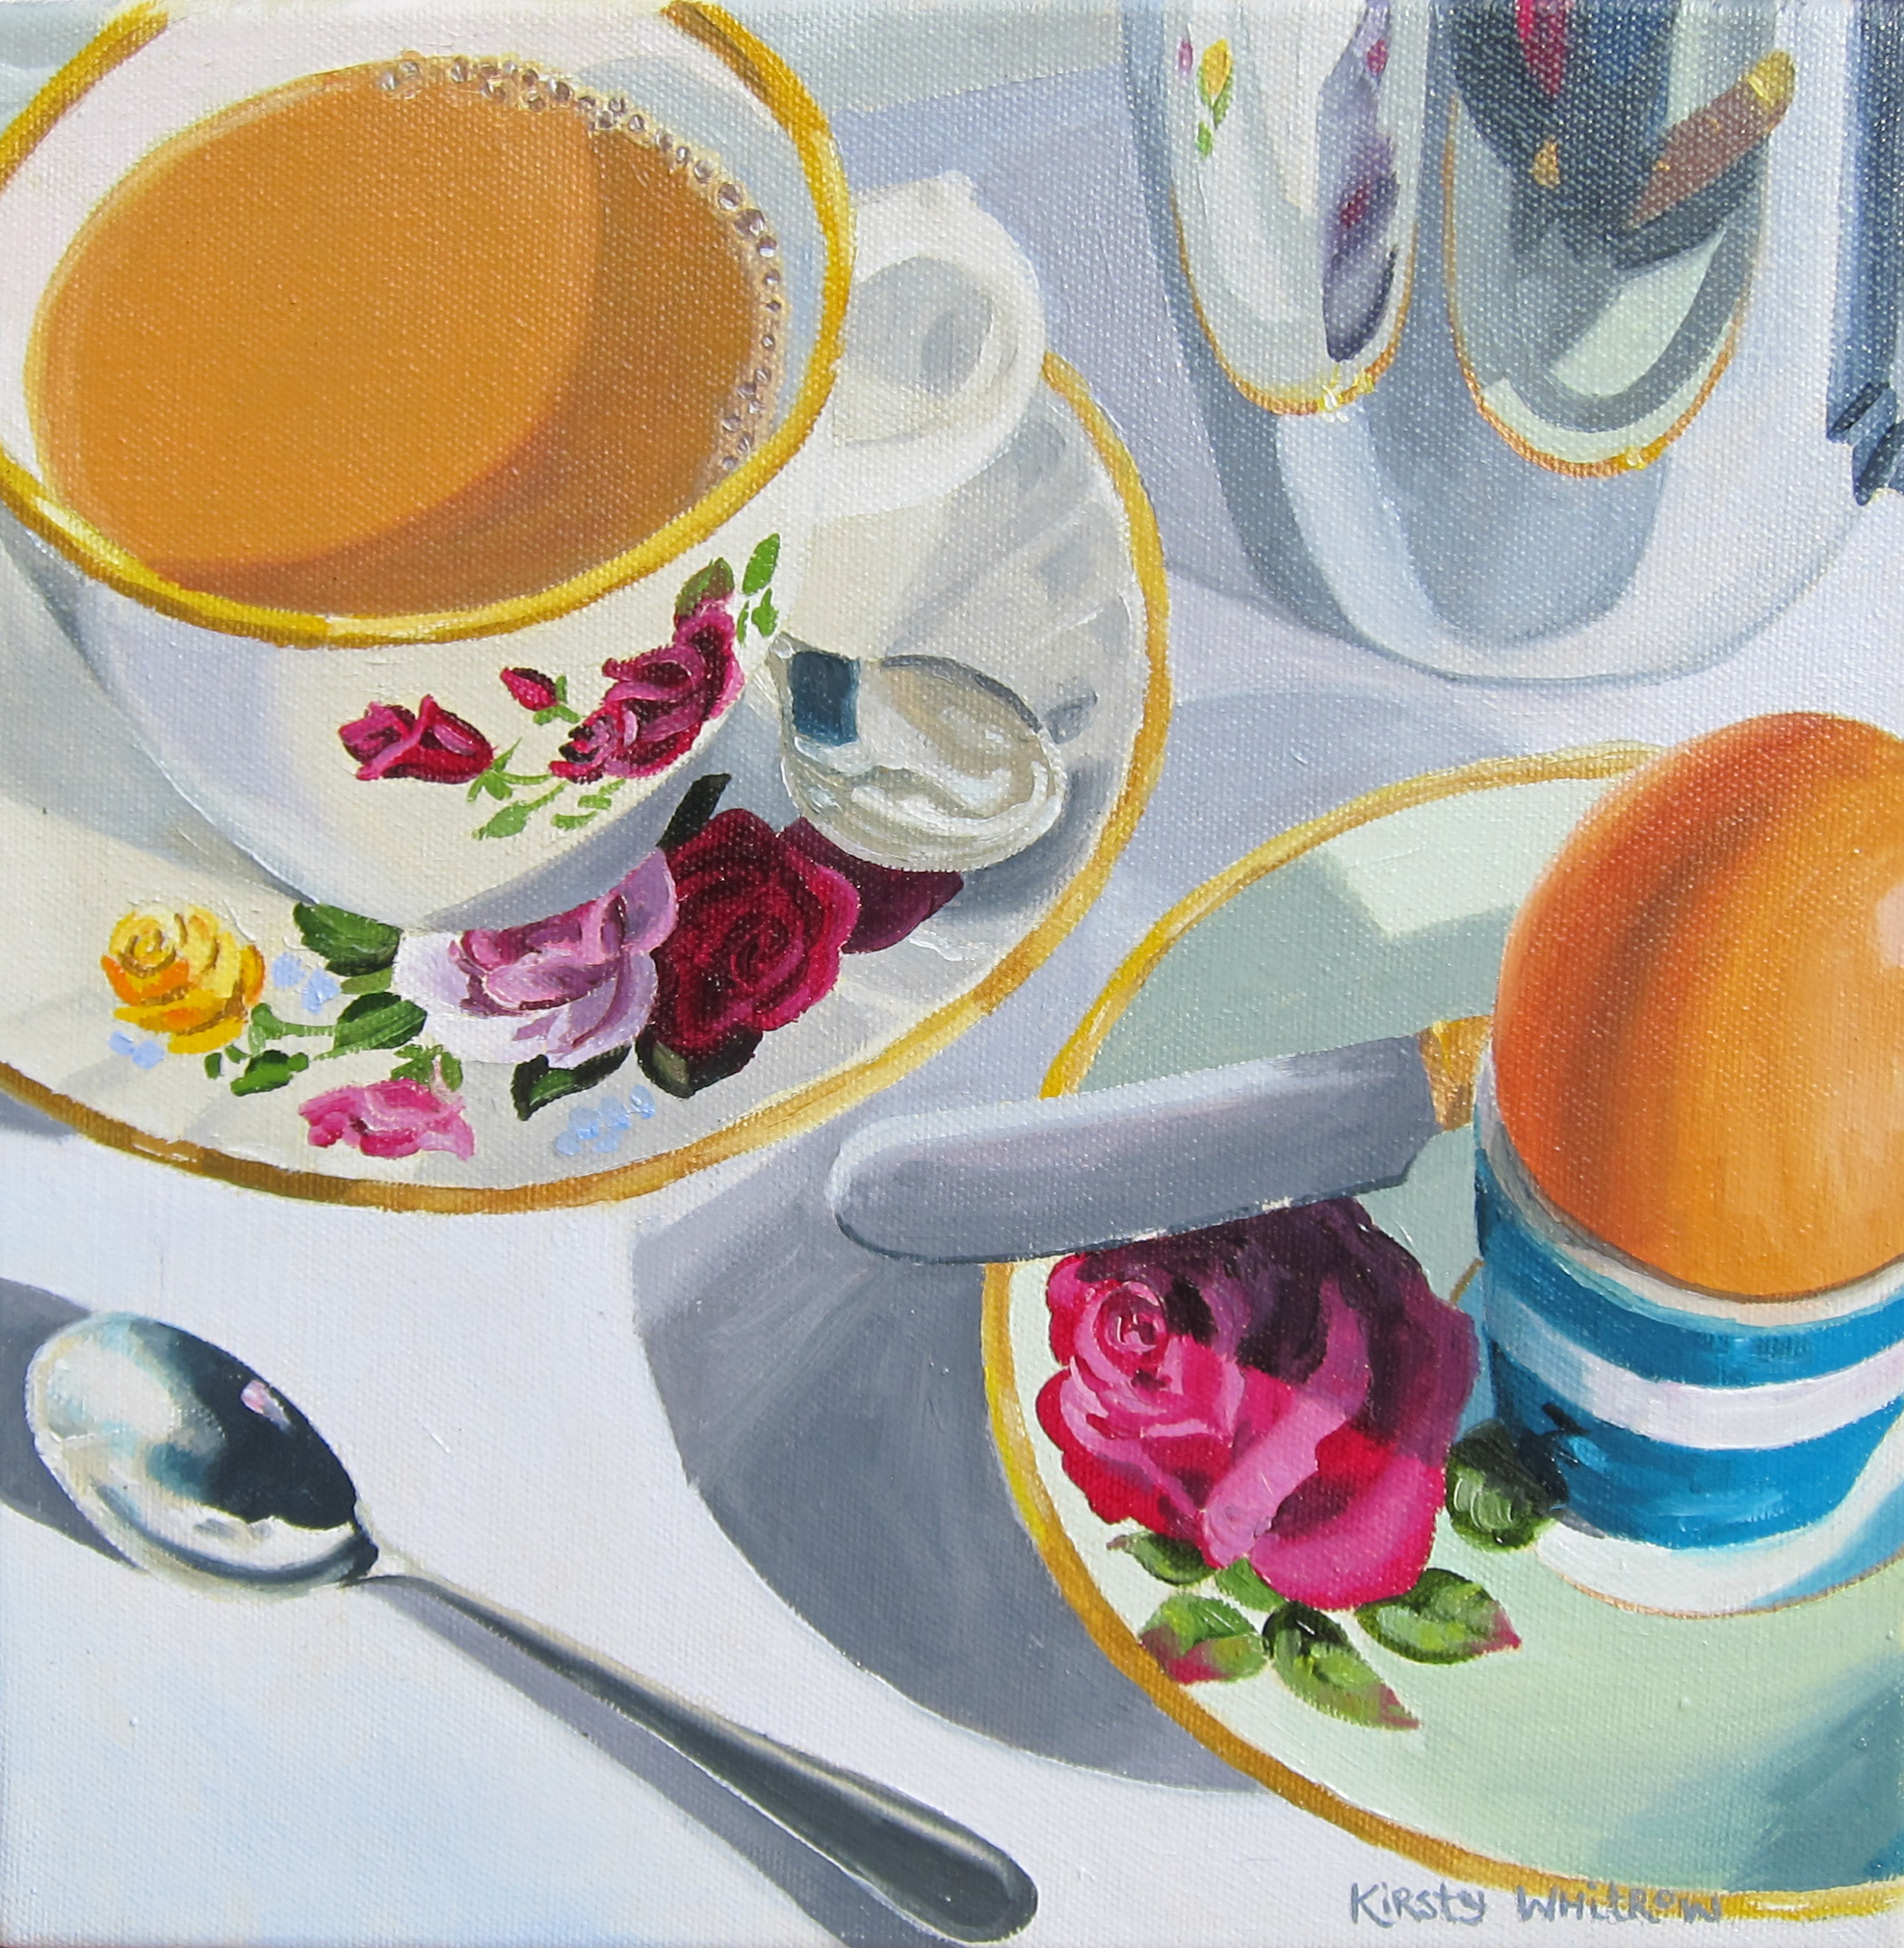 Breakfast time kirsty whitrow